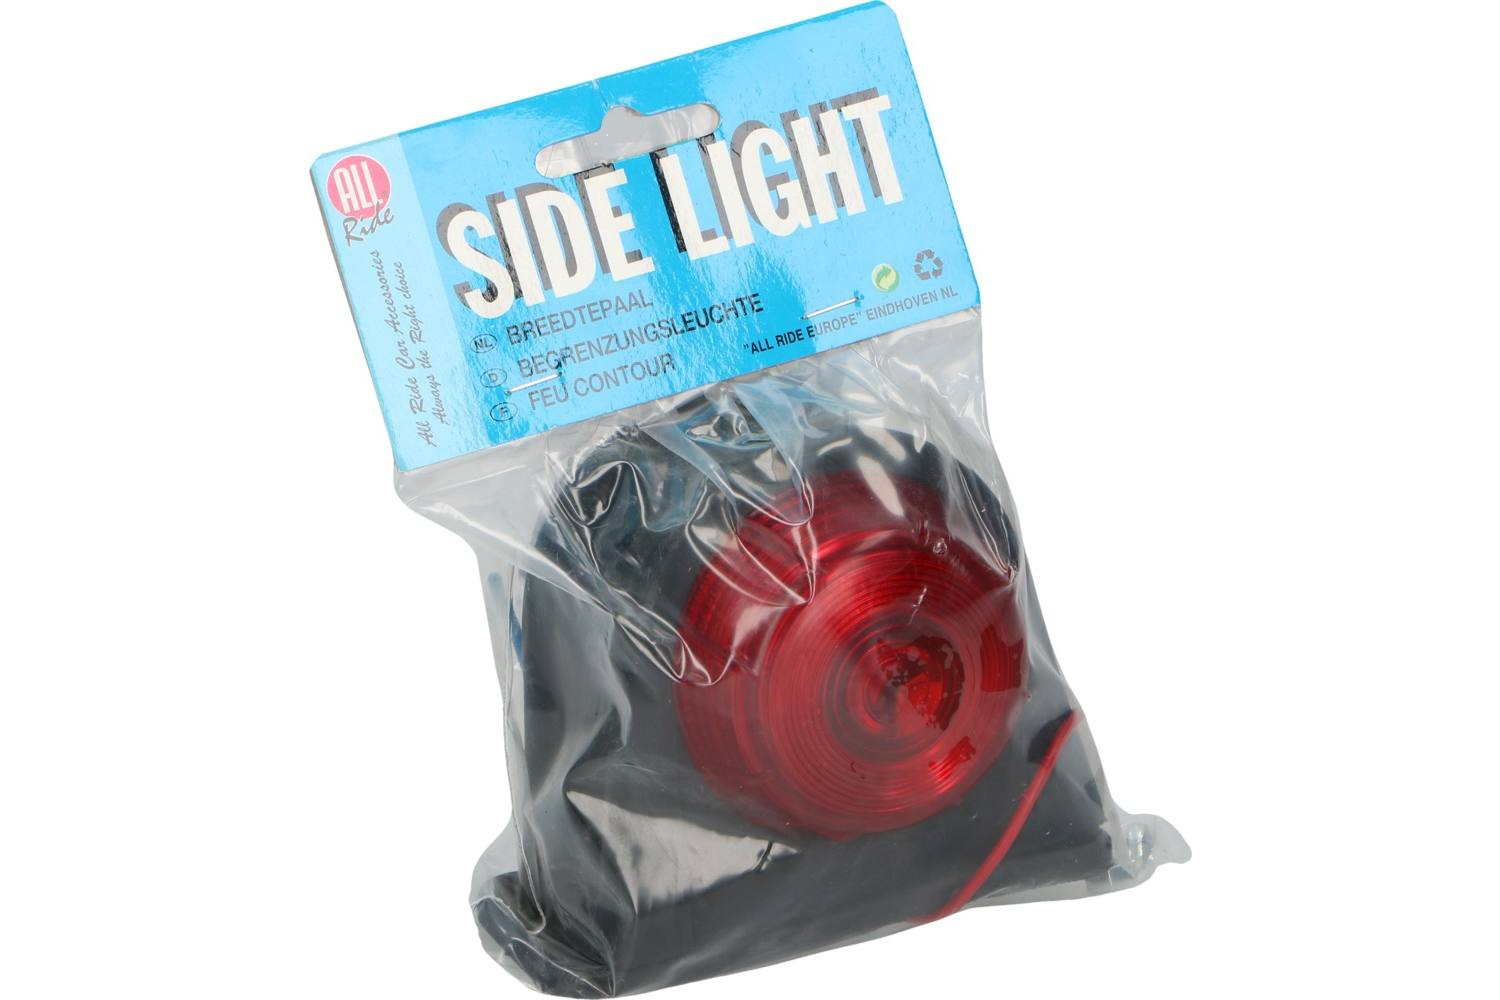 Truck light, AllRide, 24V, side light 1